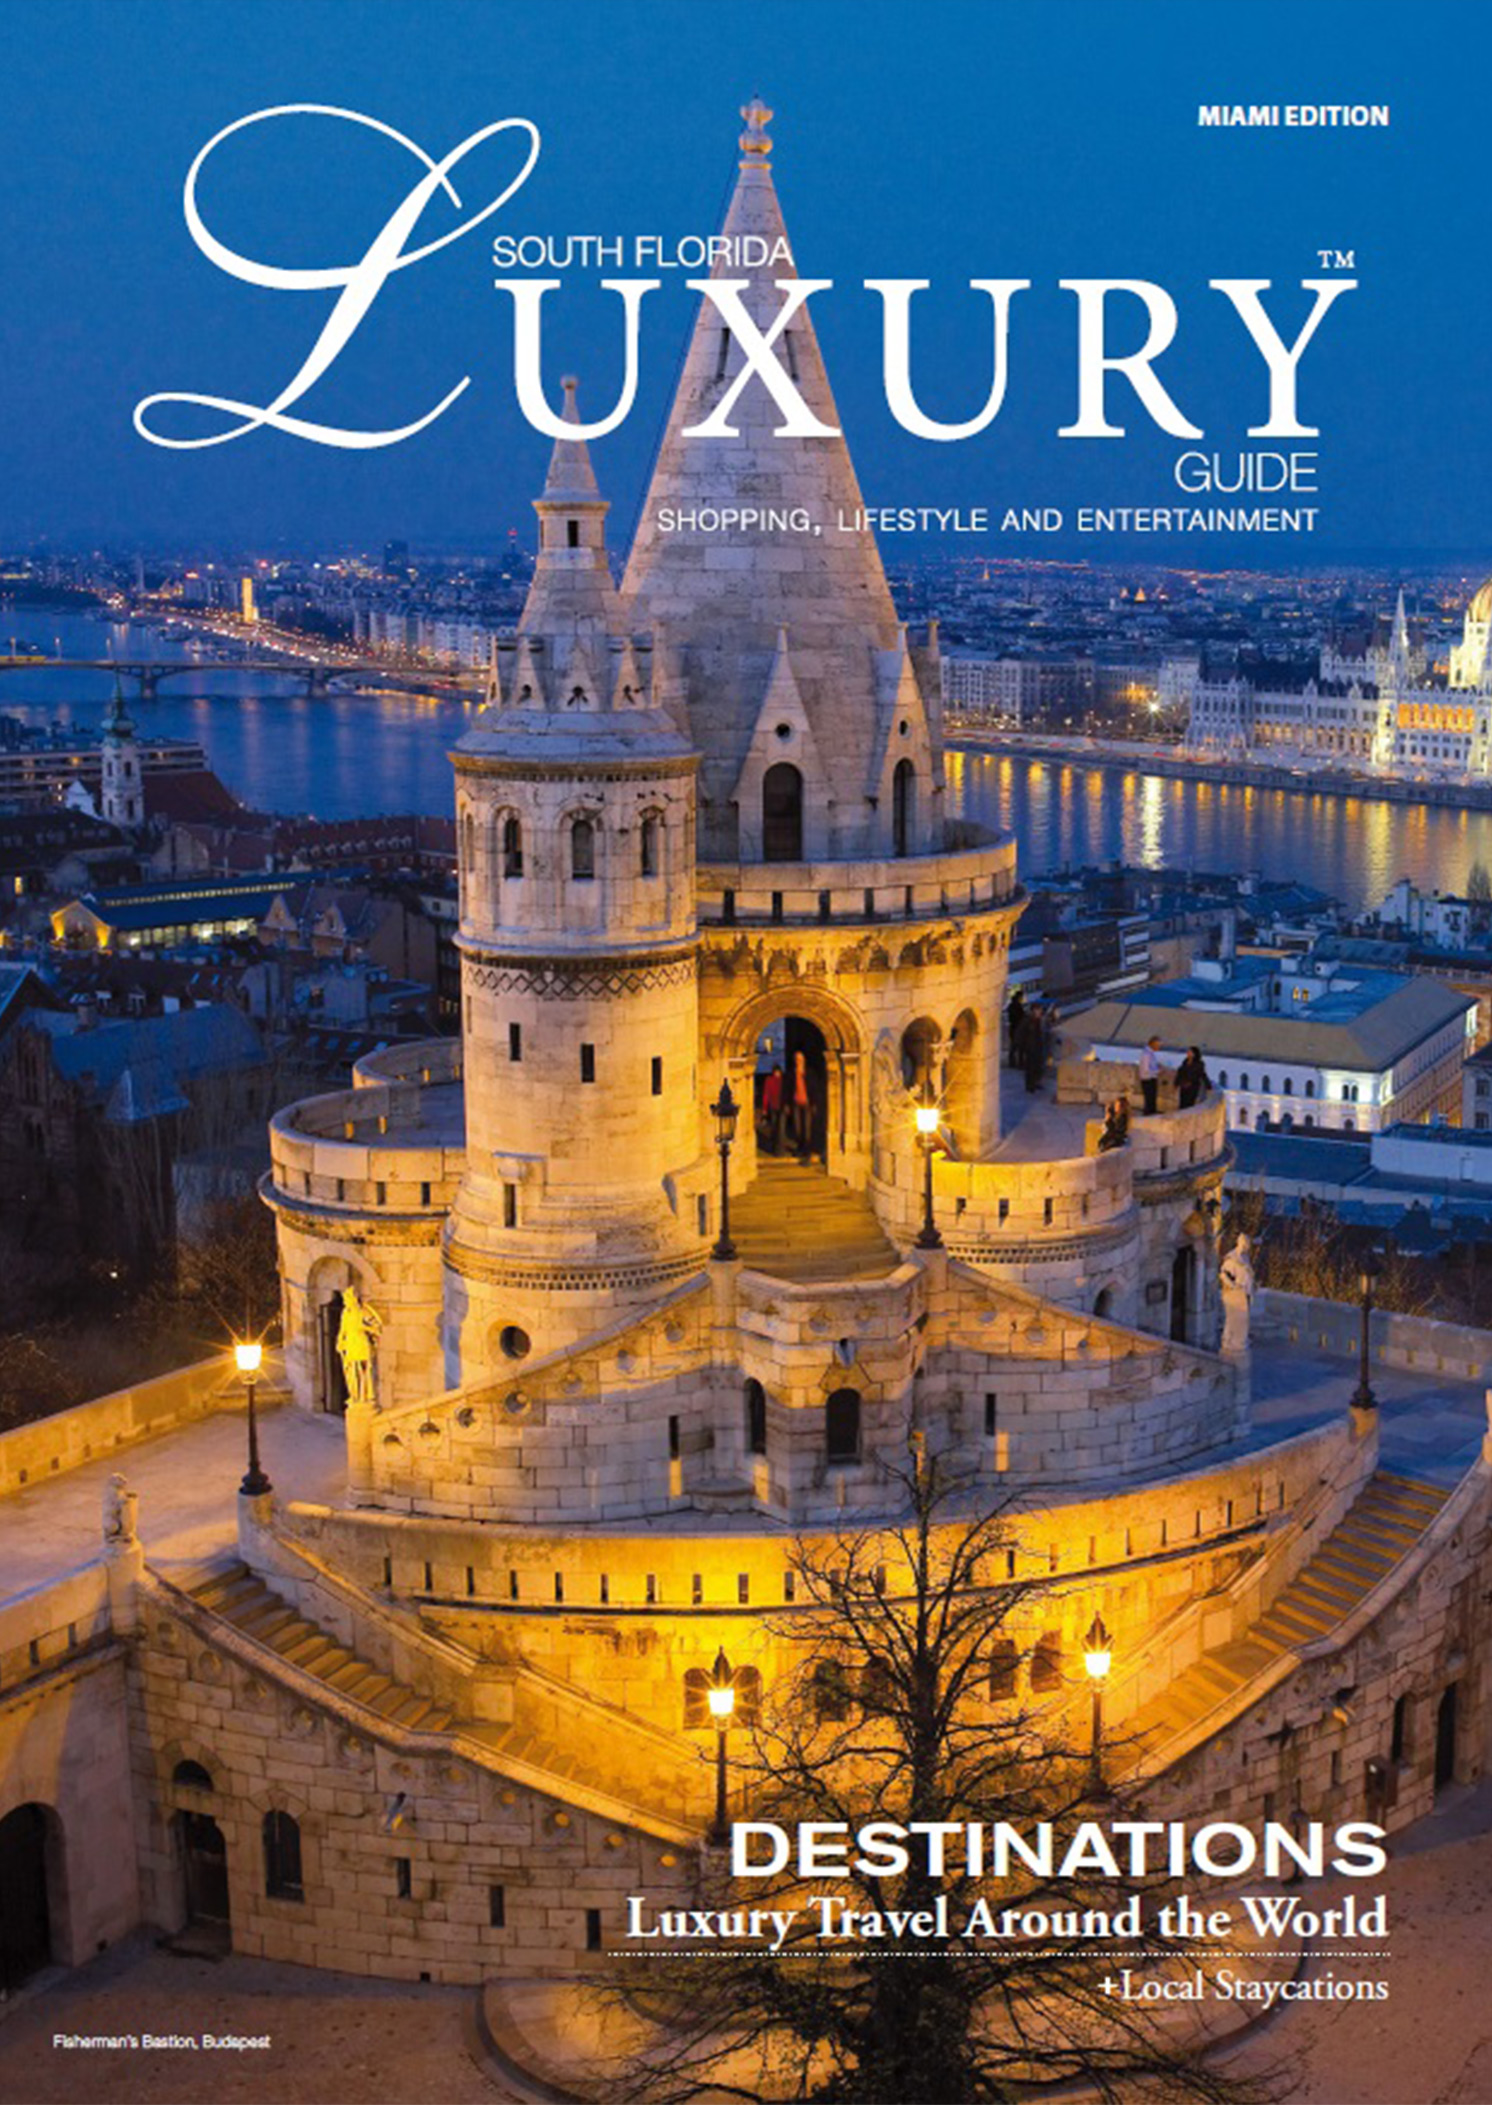 Luxury Guide magazine cover